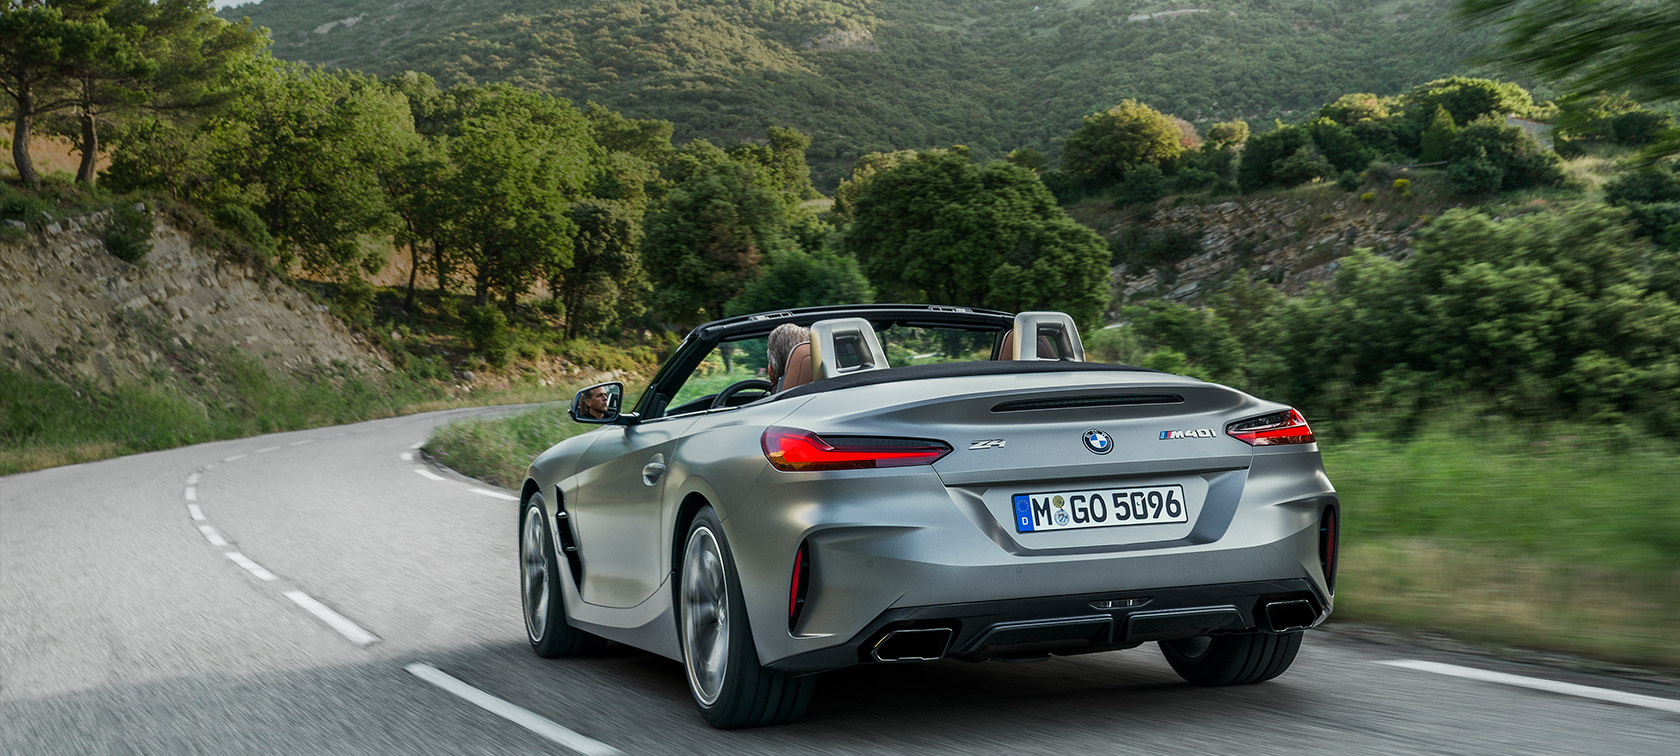 BMW Z4 M40i G29 2019 Cabrio BMW Individual Frozen Grey metallic three-quarter rear view